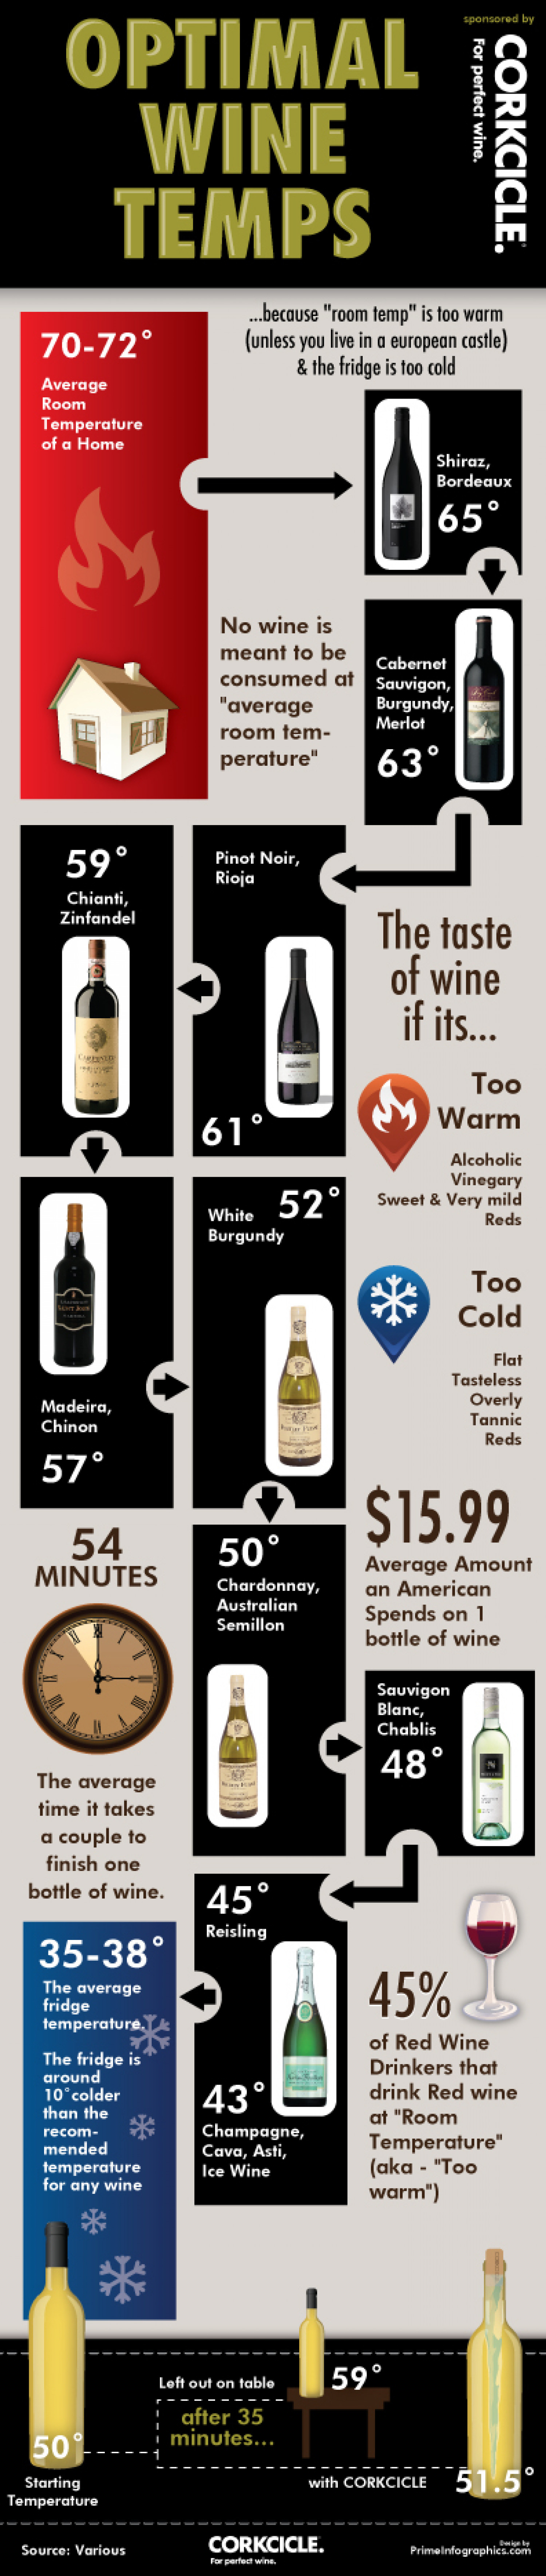 Optimal Wine Temps Infographic